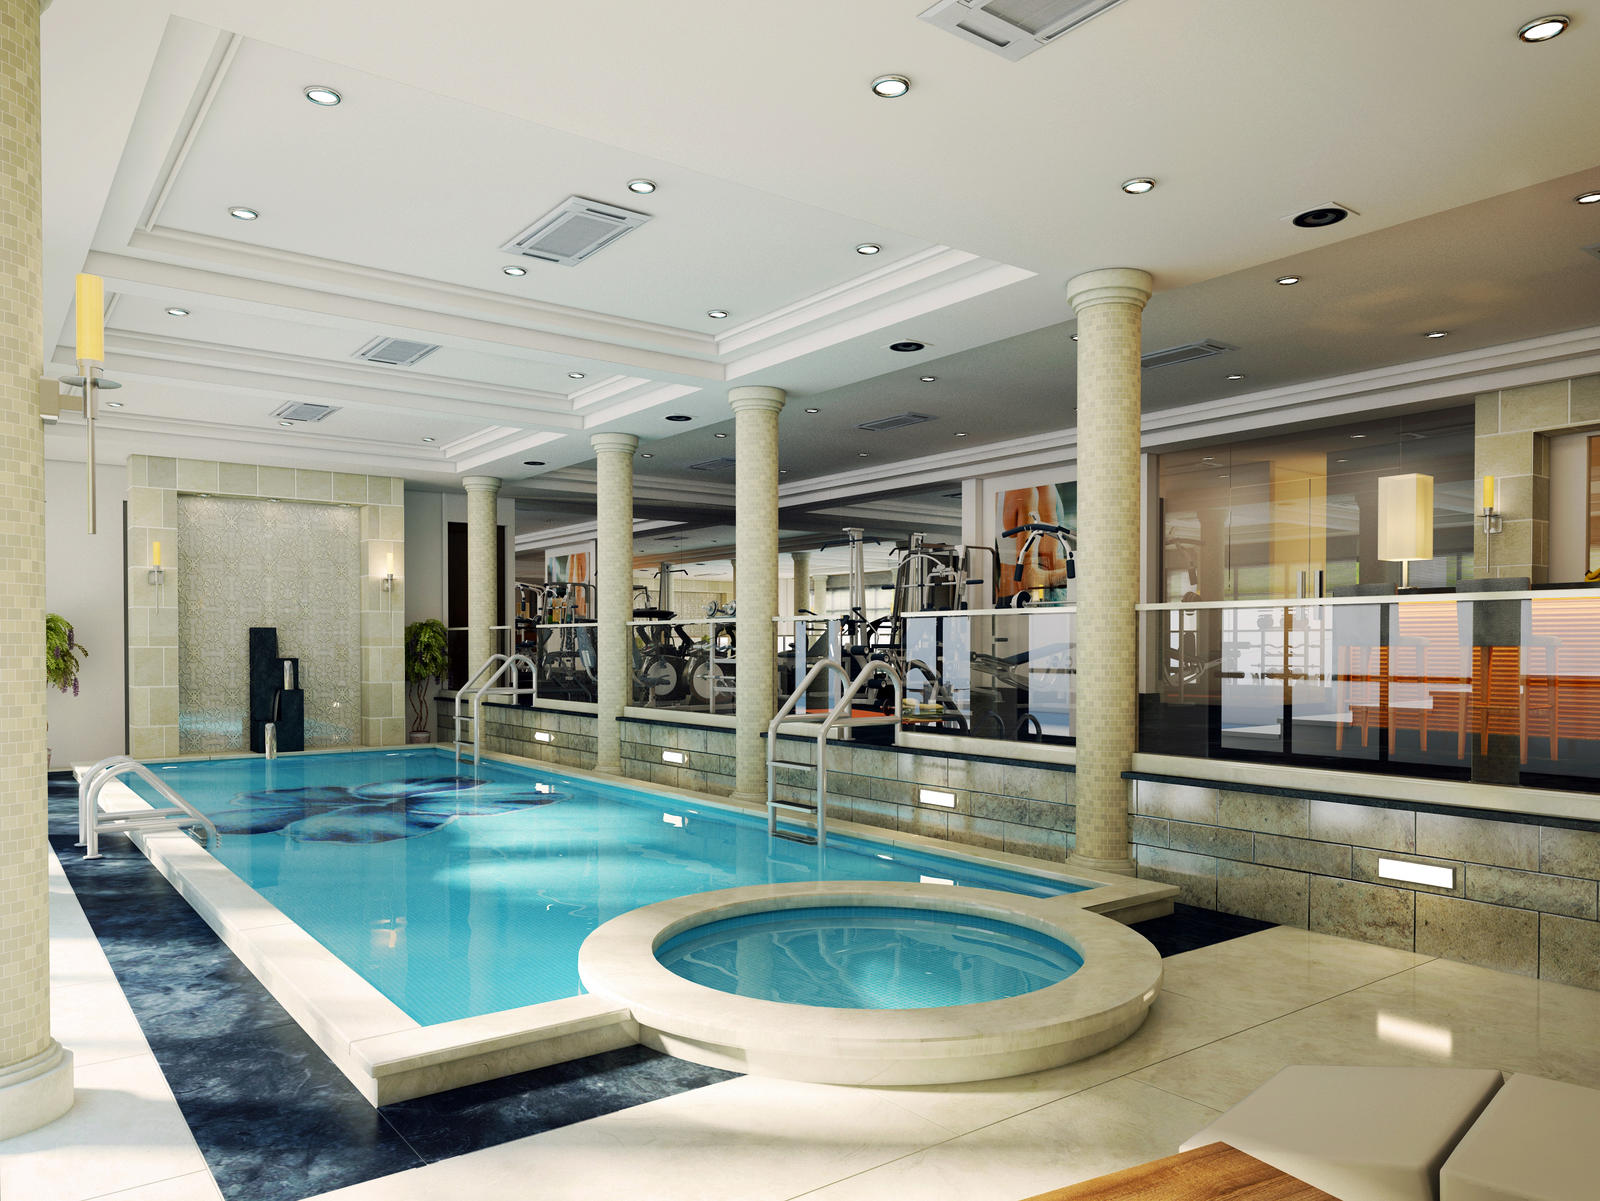 Basement pool 2 by kasrawy on deviantart for Basement swimming pool ideas